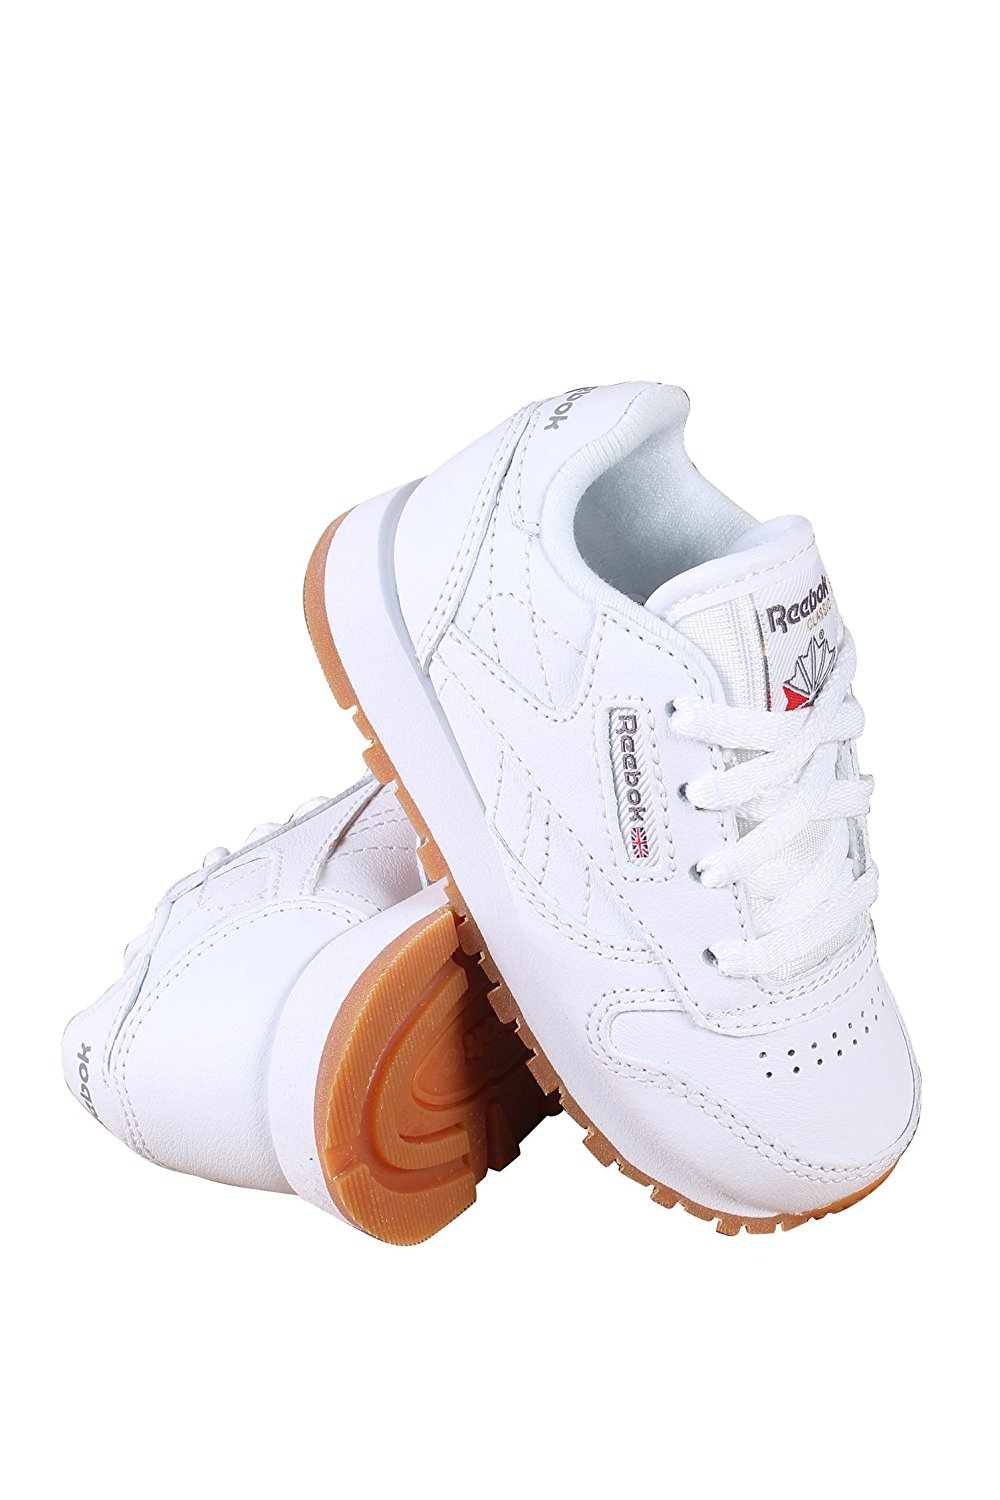 81a9f3105fcf Get Quotations · Reebok Classic Leather Shoe (Infant Toddler)